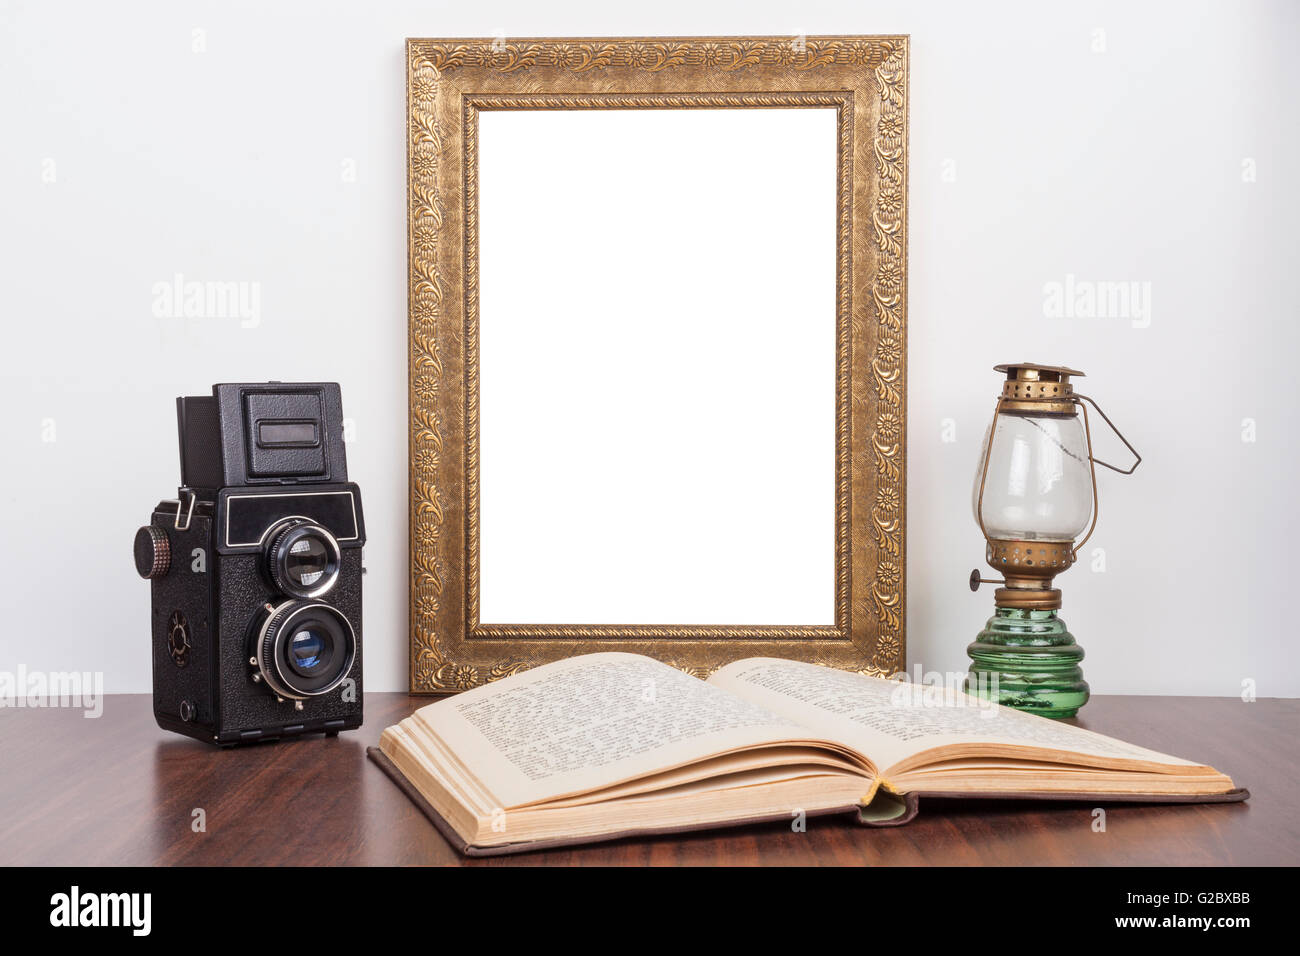 Old gold portrait frame with old camera and open book with lamp old gold portrait frame with old camera and open book with lamp jeuxipadfo Gallery